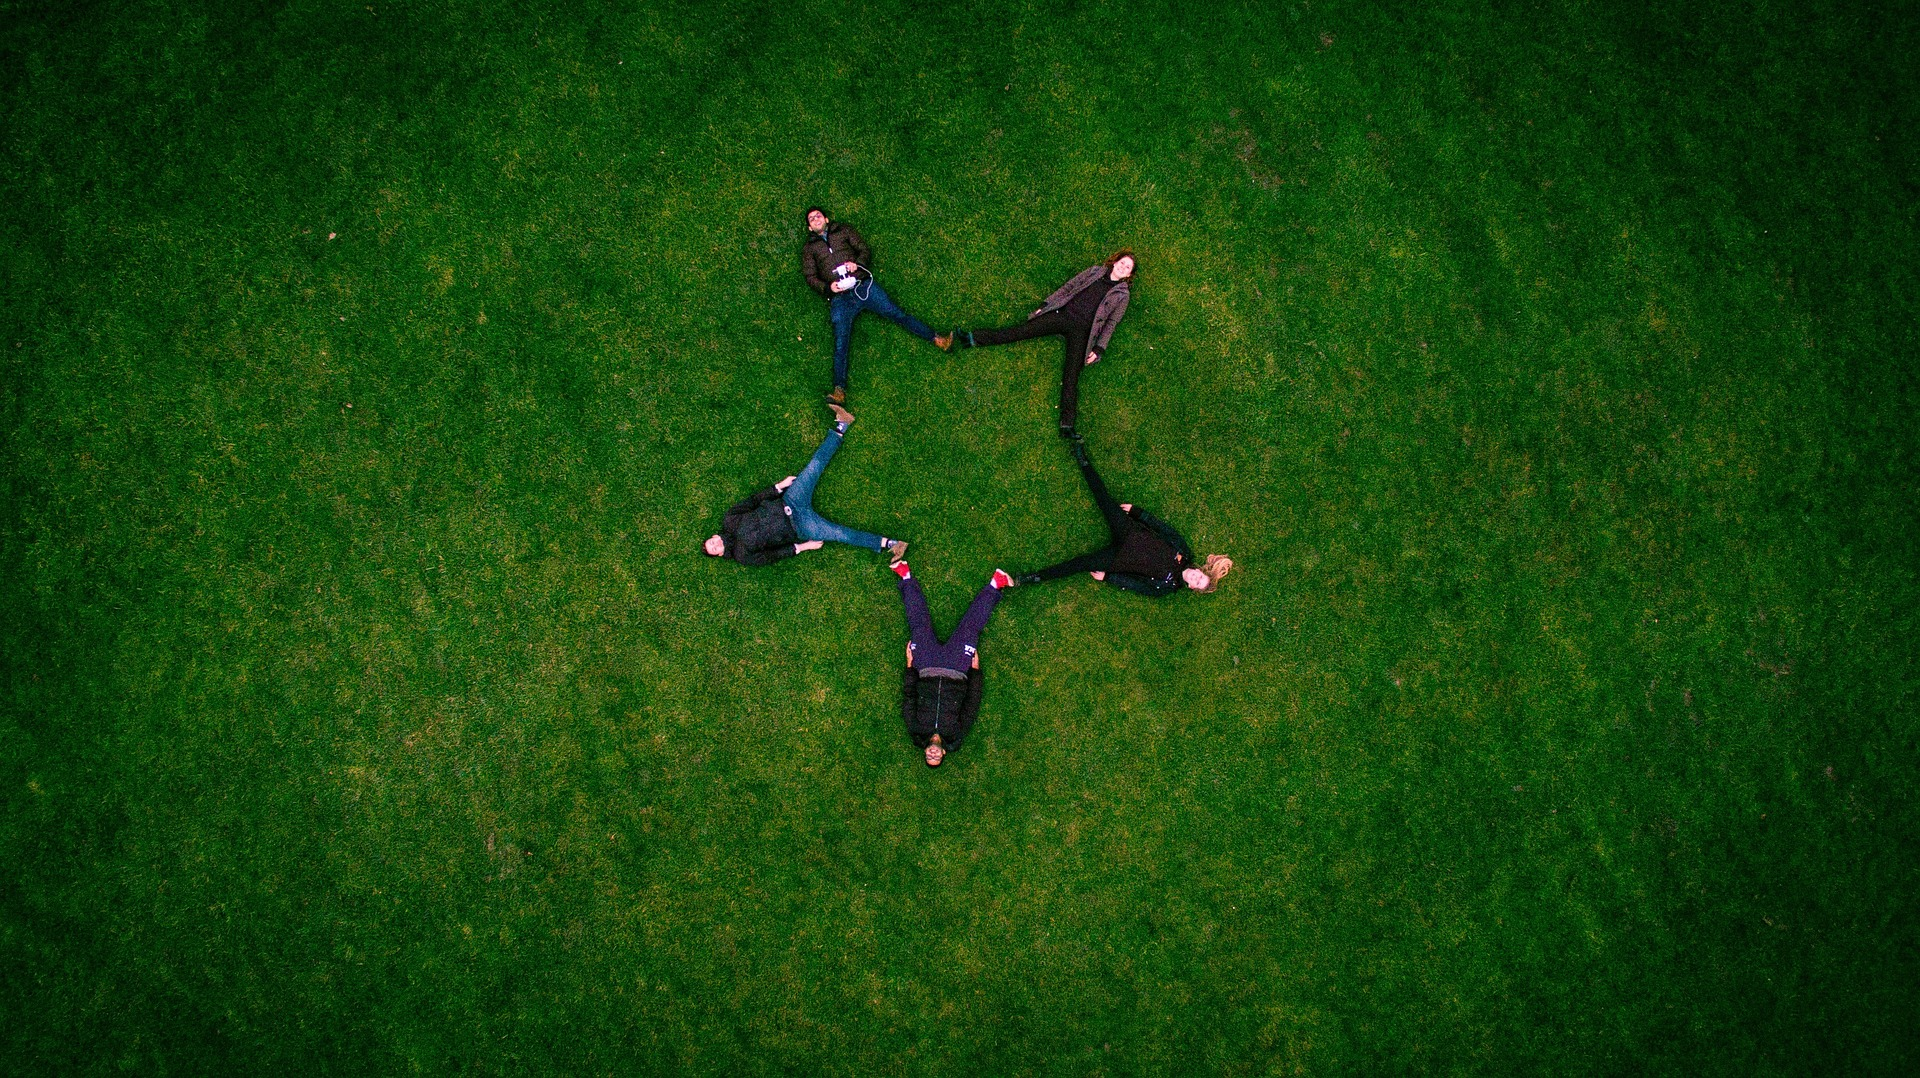 Atop a large green field, five people are lying on the grass such that their legs are meeting on each side to form the shape of a star.